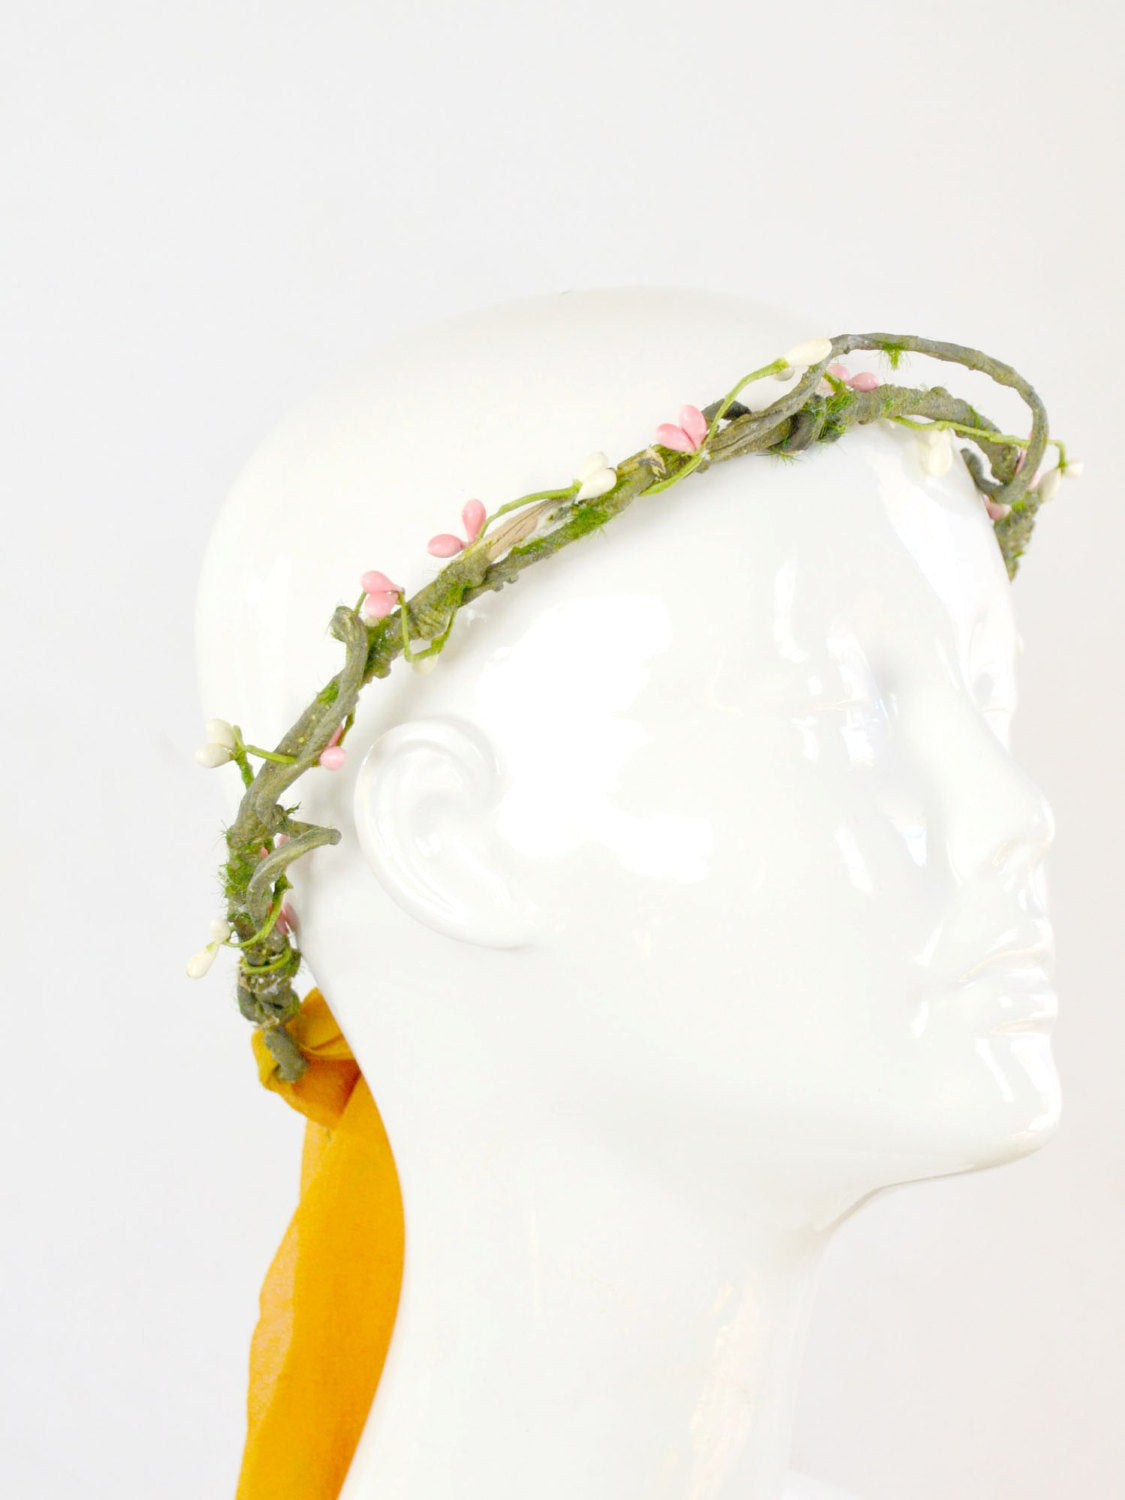 Mannequin head wearing a green, yellow, and pink crown of branches with a yellow tie.